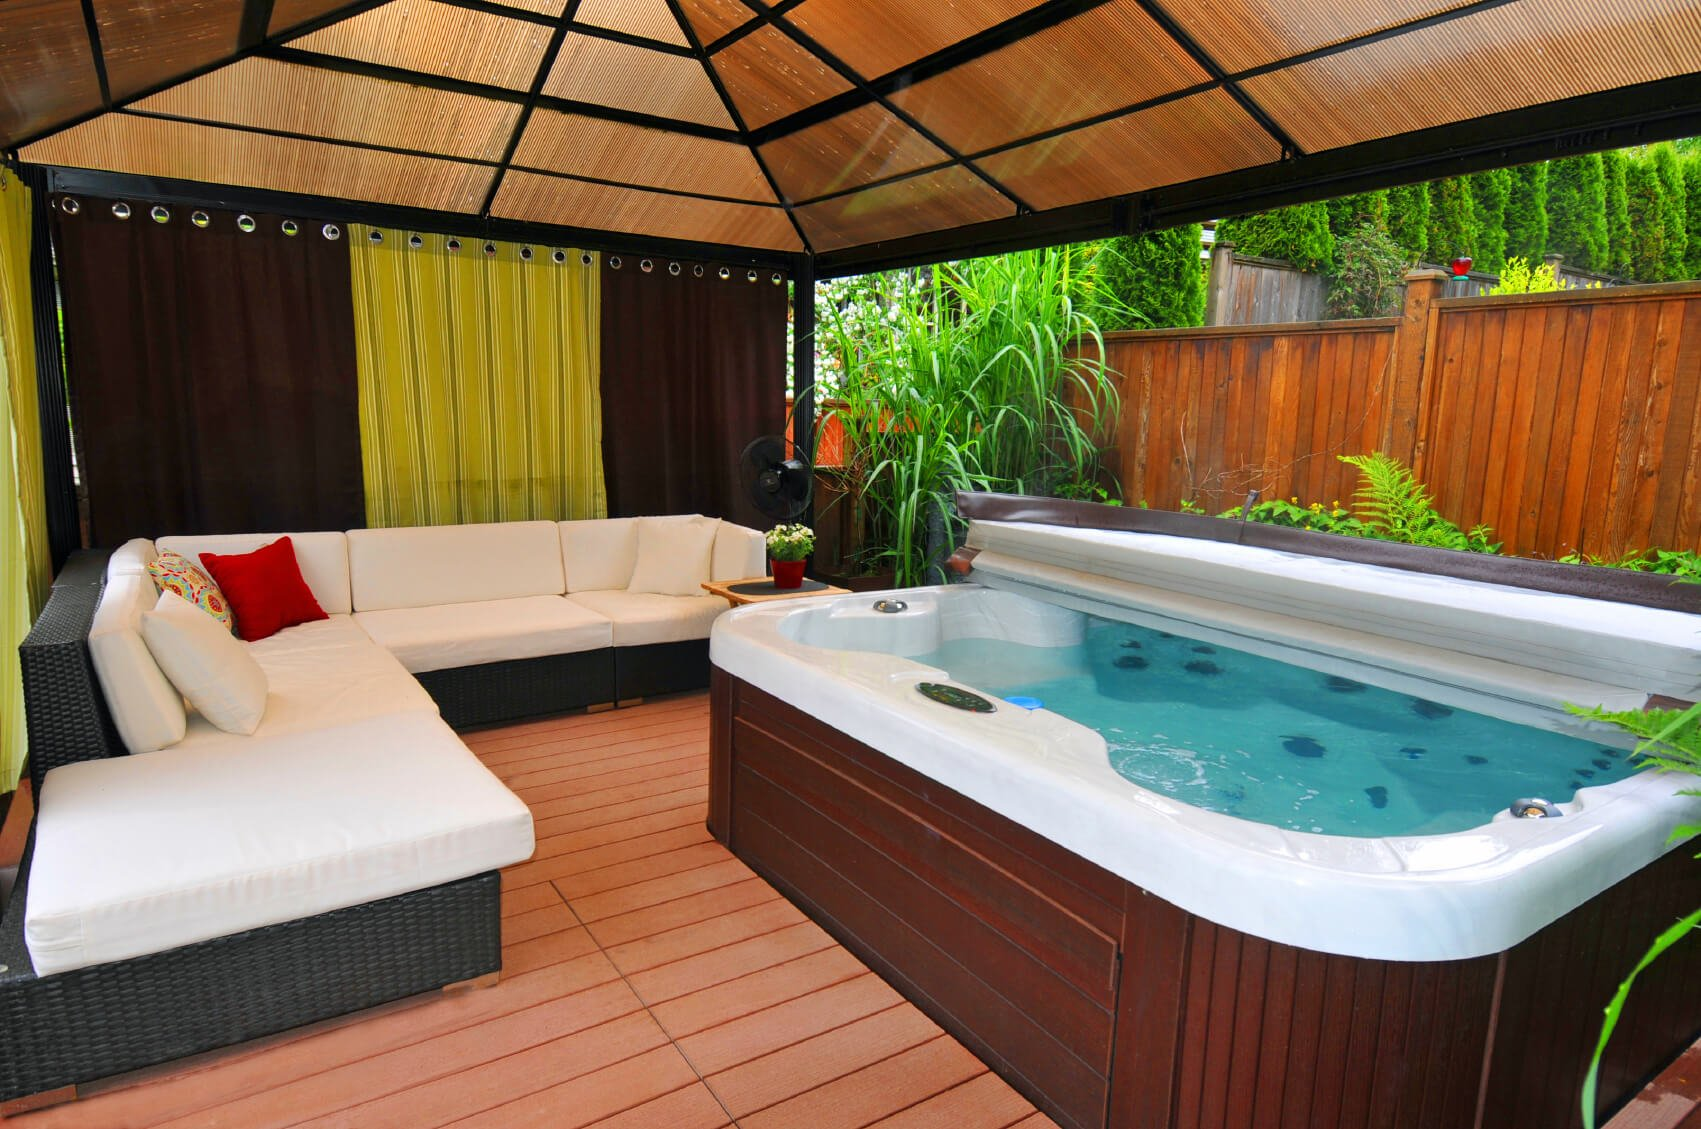 This area can be private and secluded or open wide to the worlds, but there is always ample room for people to sit in and out of the hot tub.